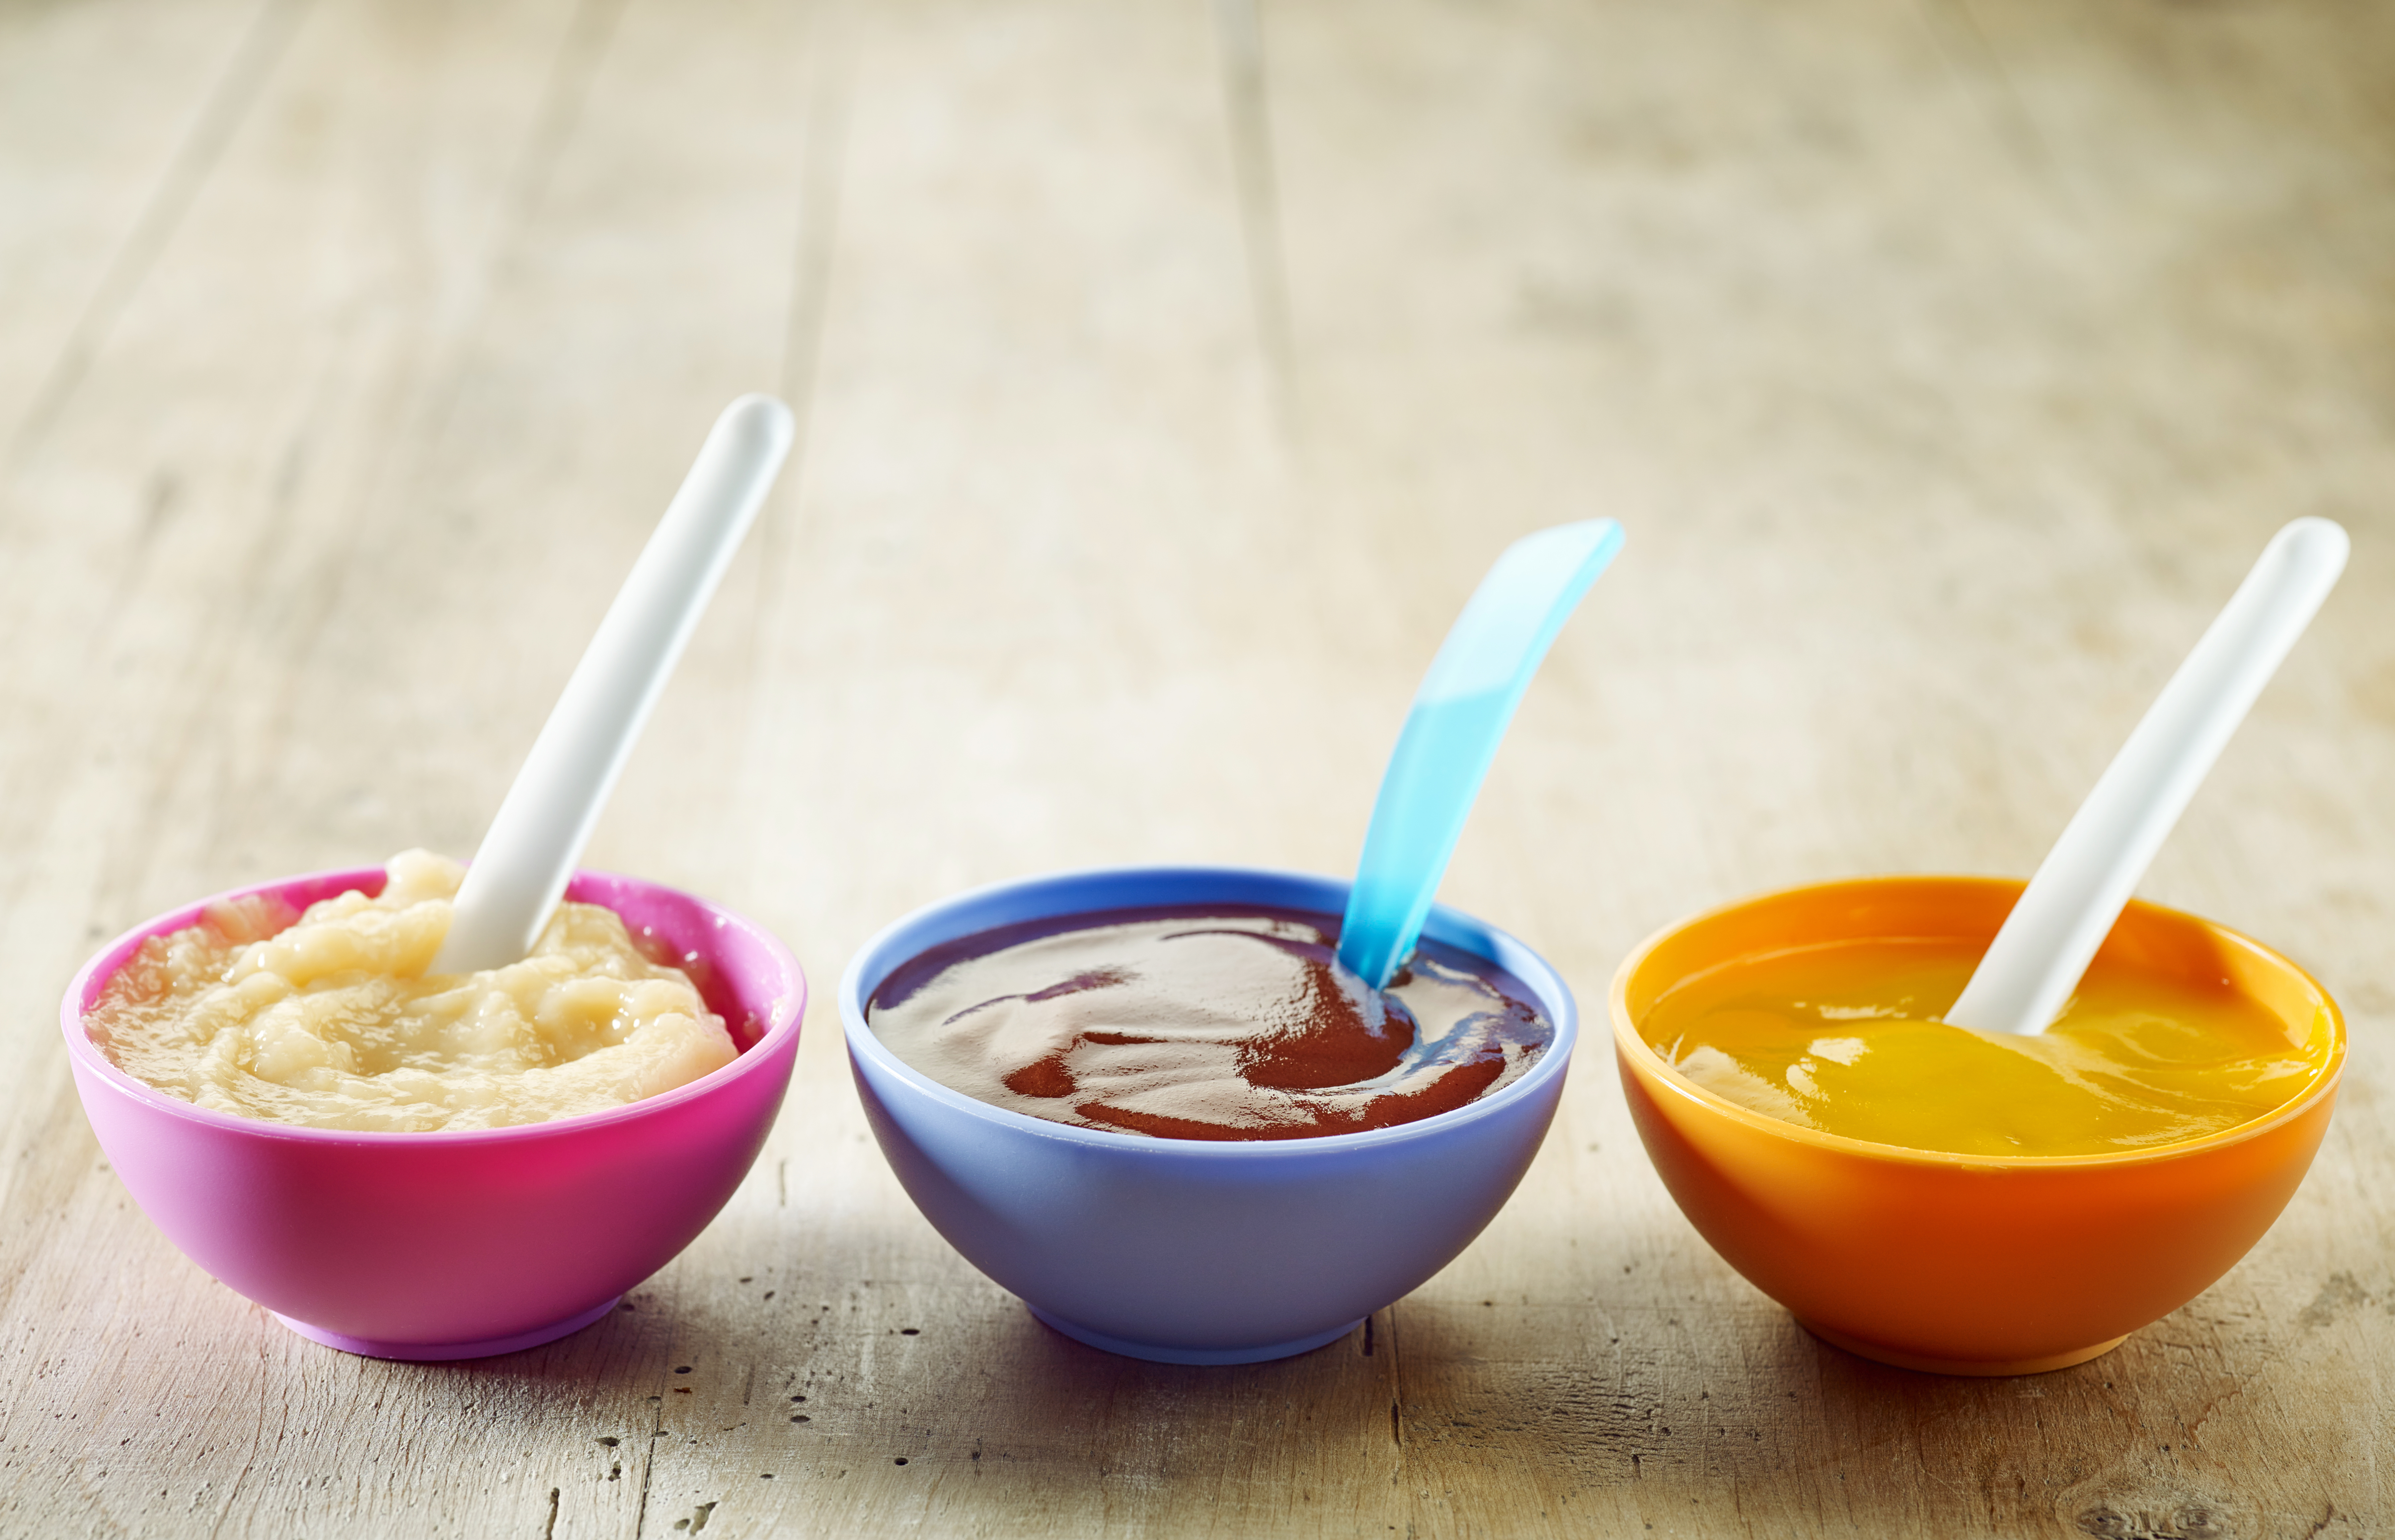 Weaning your baby onto solid foods doesn't have to be stressful - check out these FAQs.